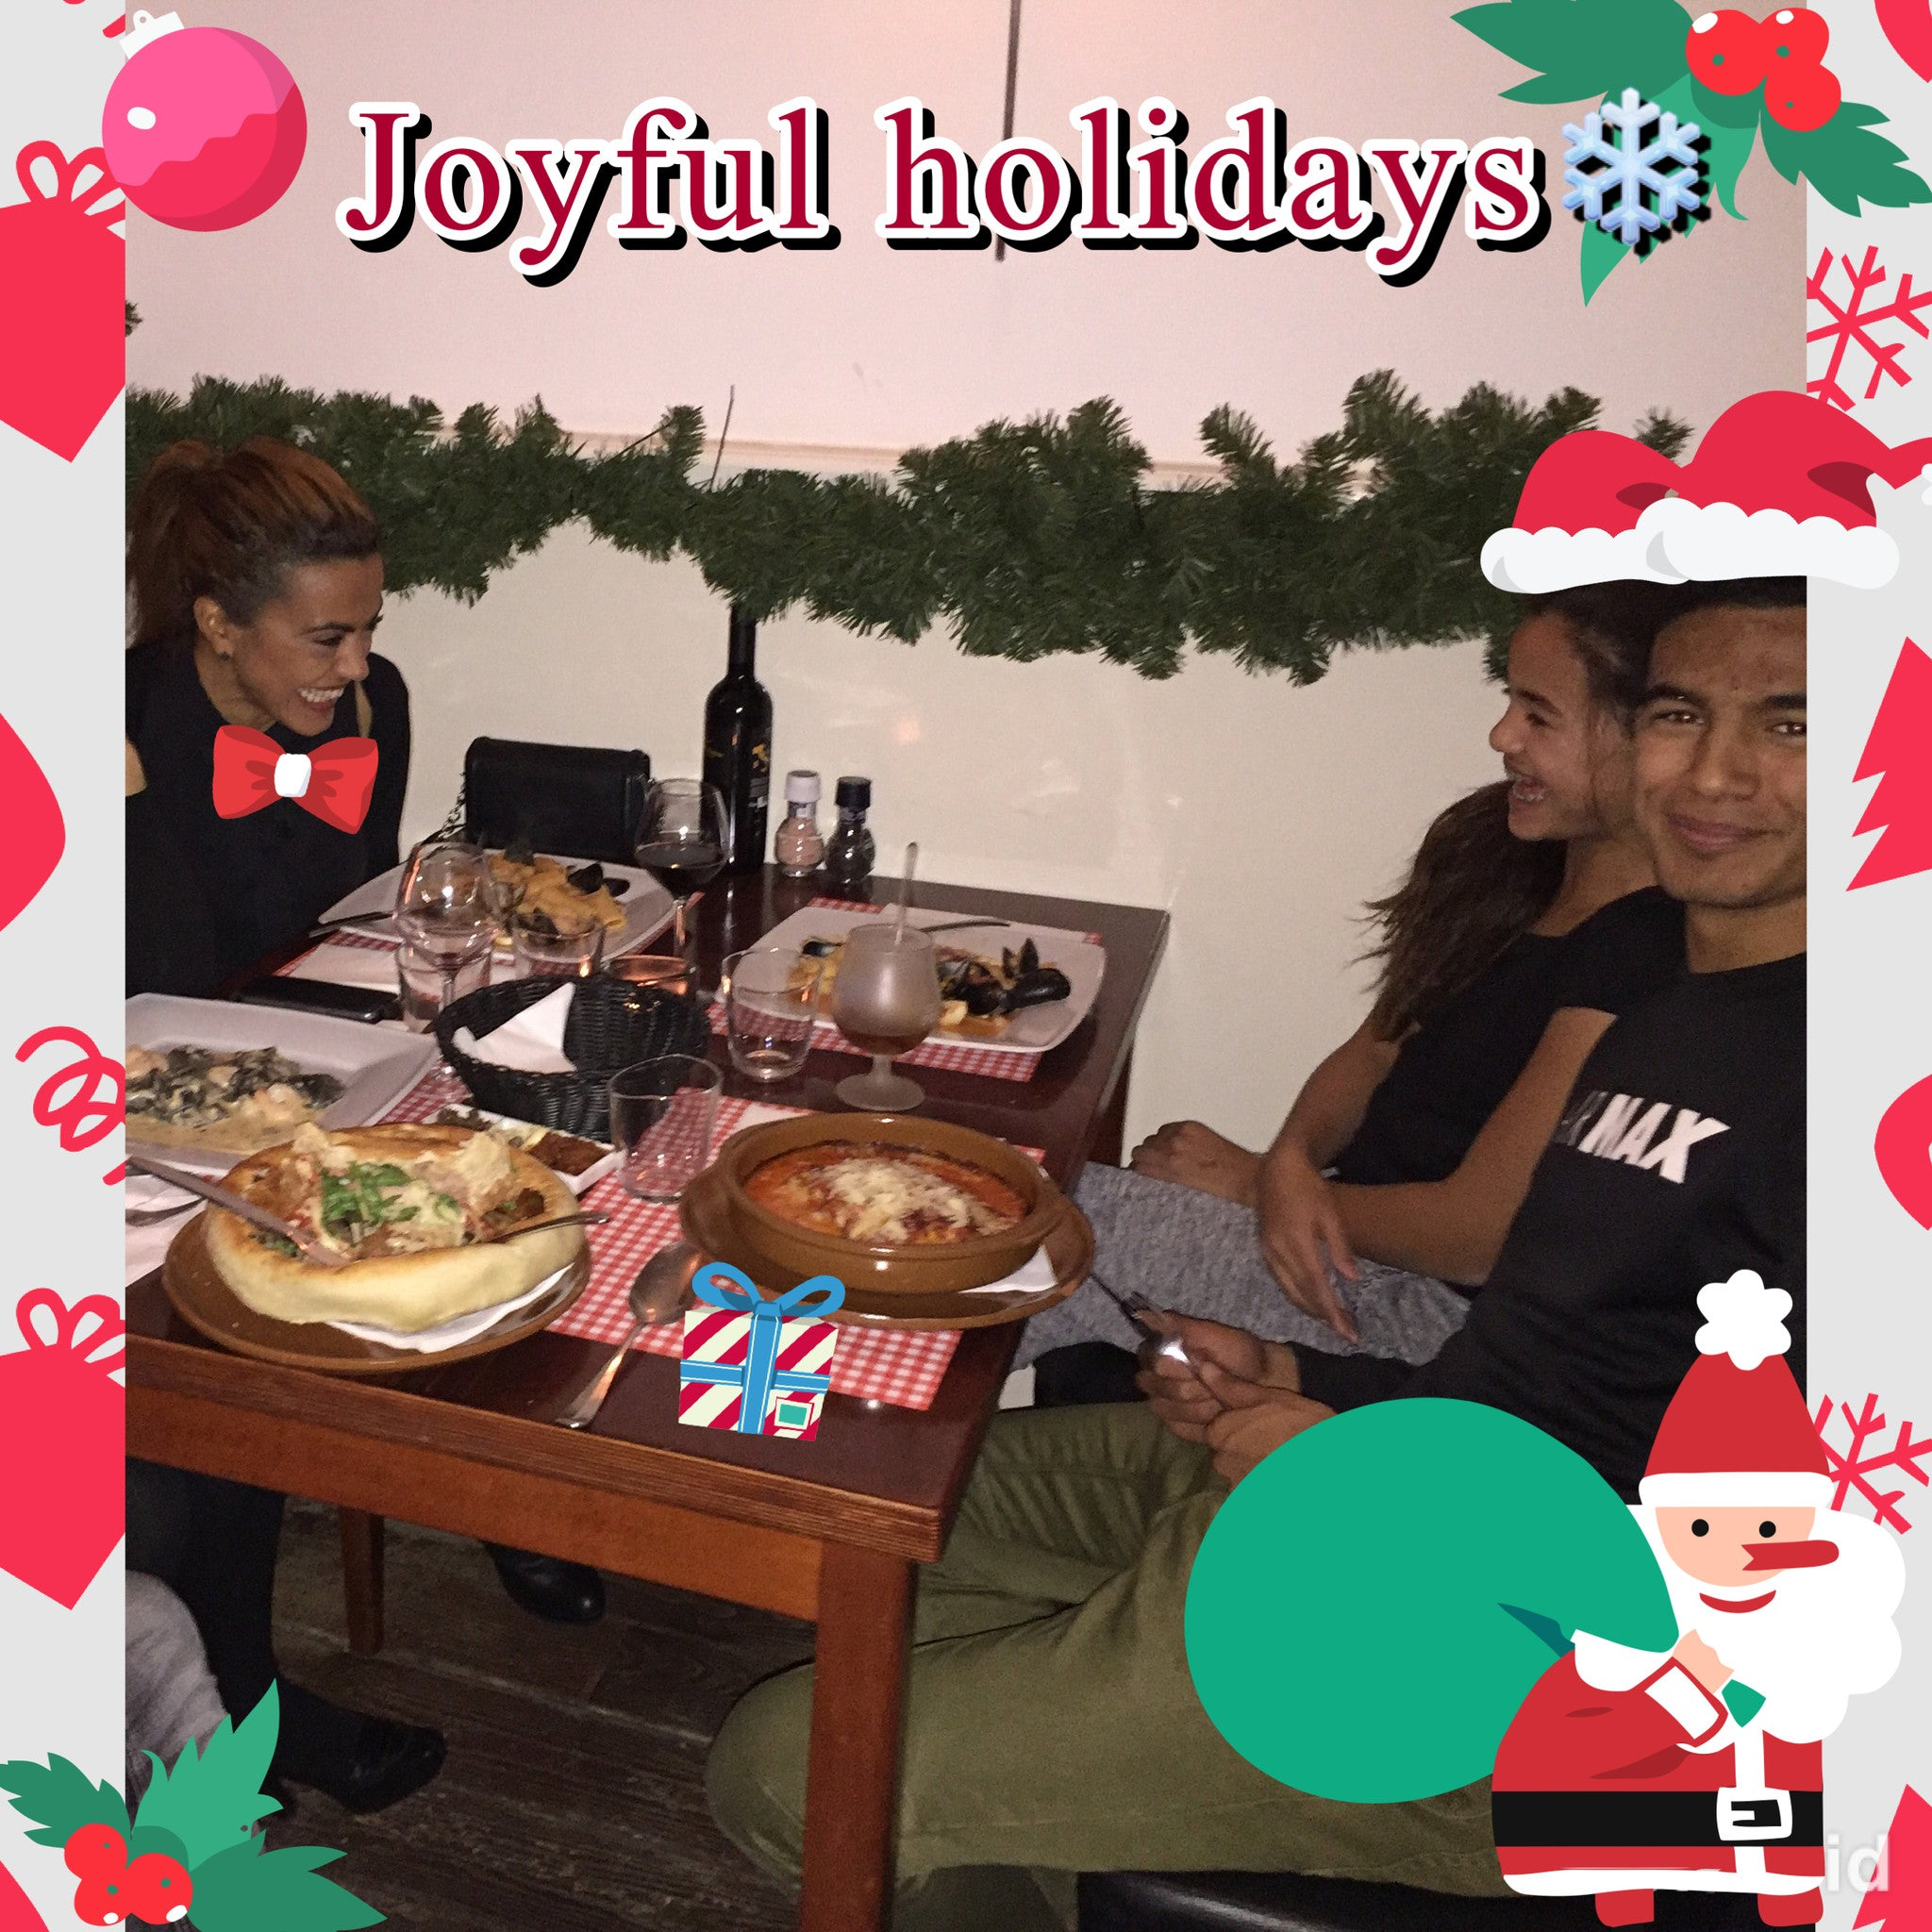 Joyfull holidays